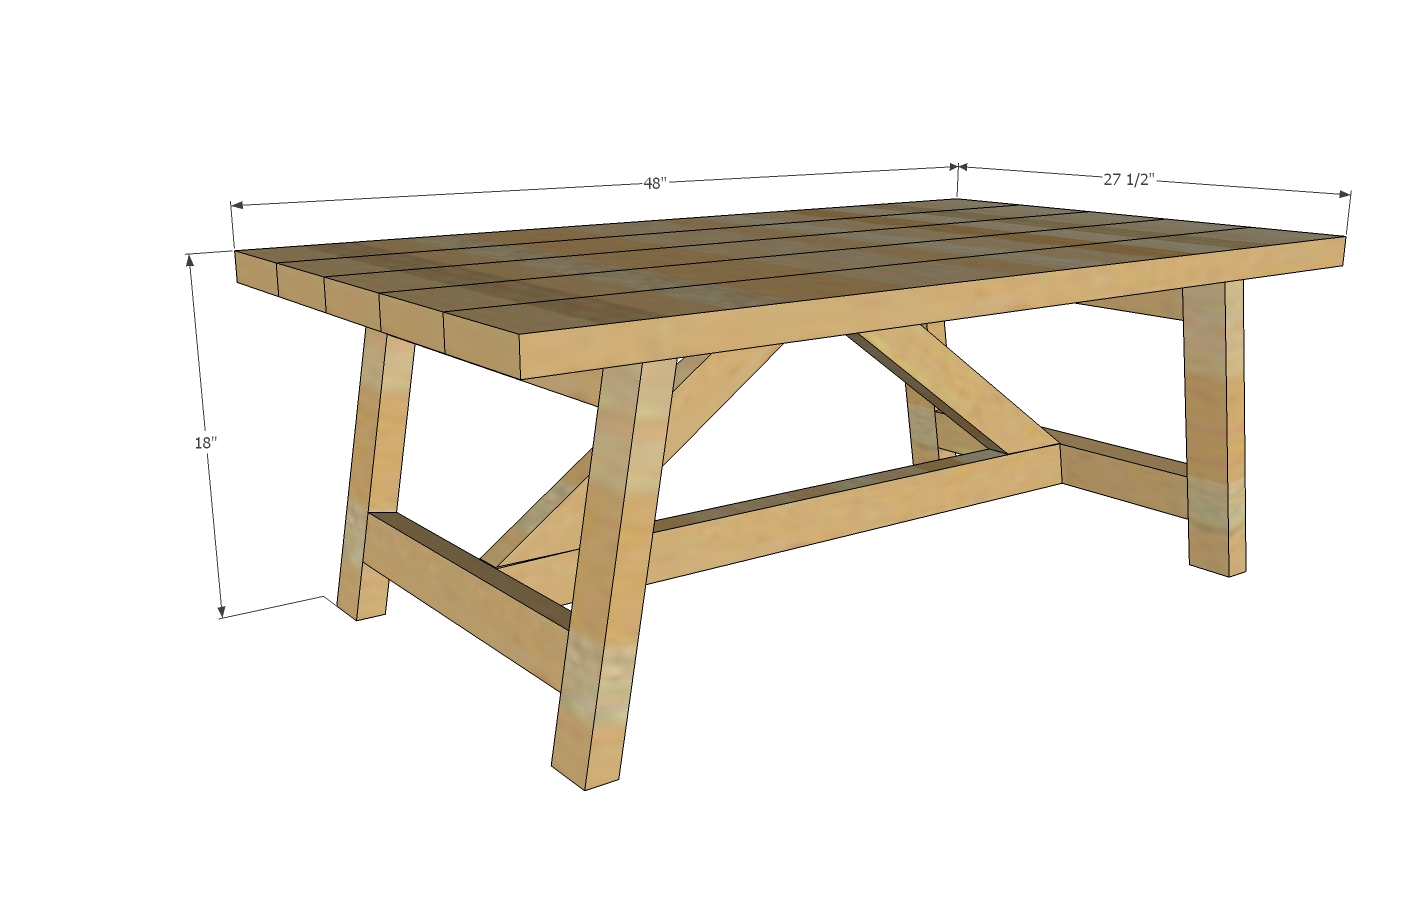 woodworking plans for octagon picnic table | Quick Woodworking ...